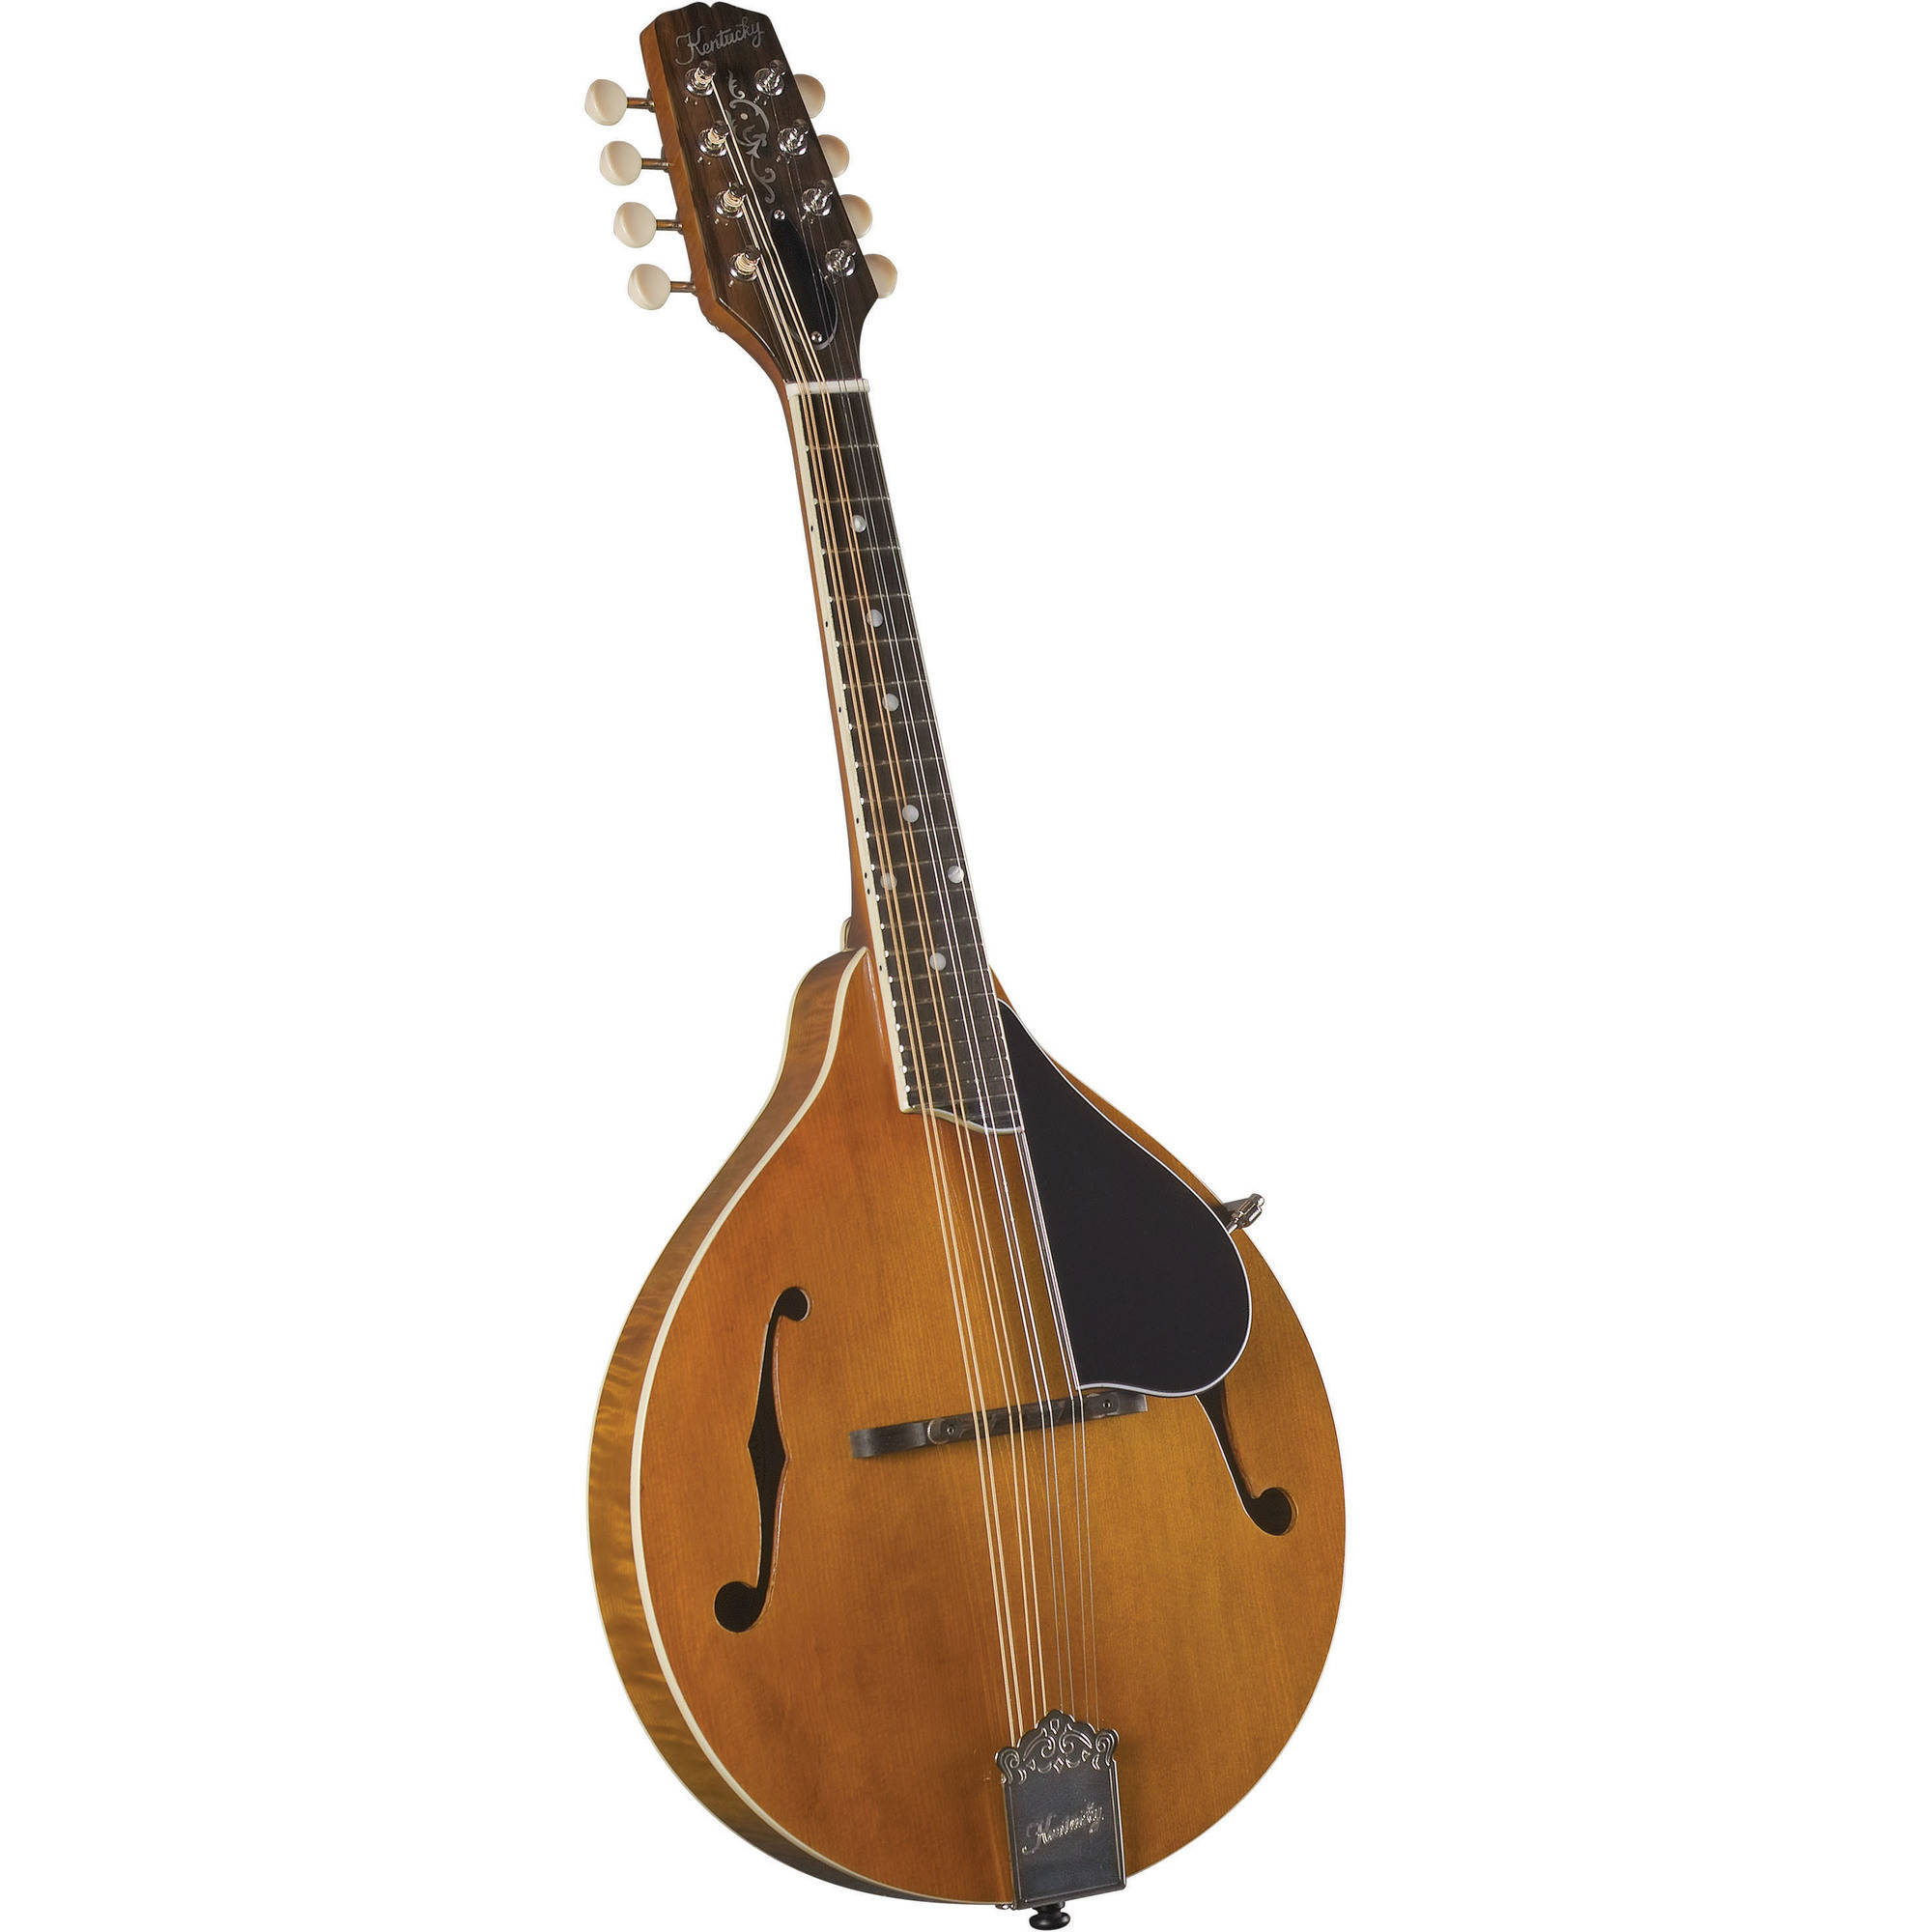 Kentucky KM-252 Artist A-Model Mandolin, Transparent Amber by Kentucky